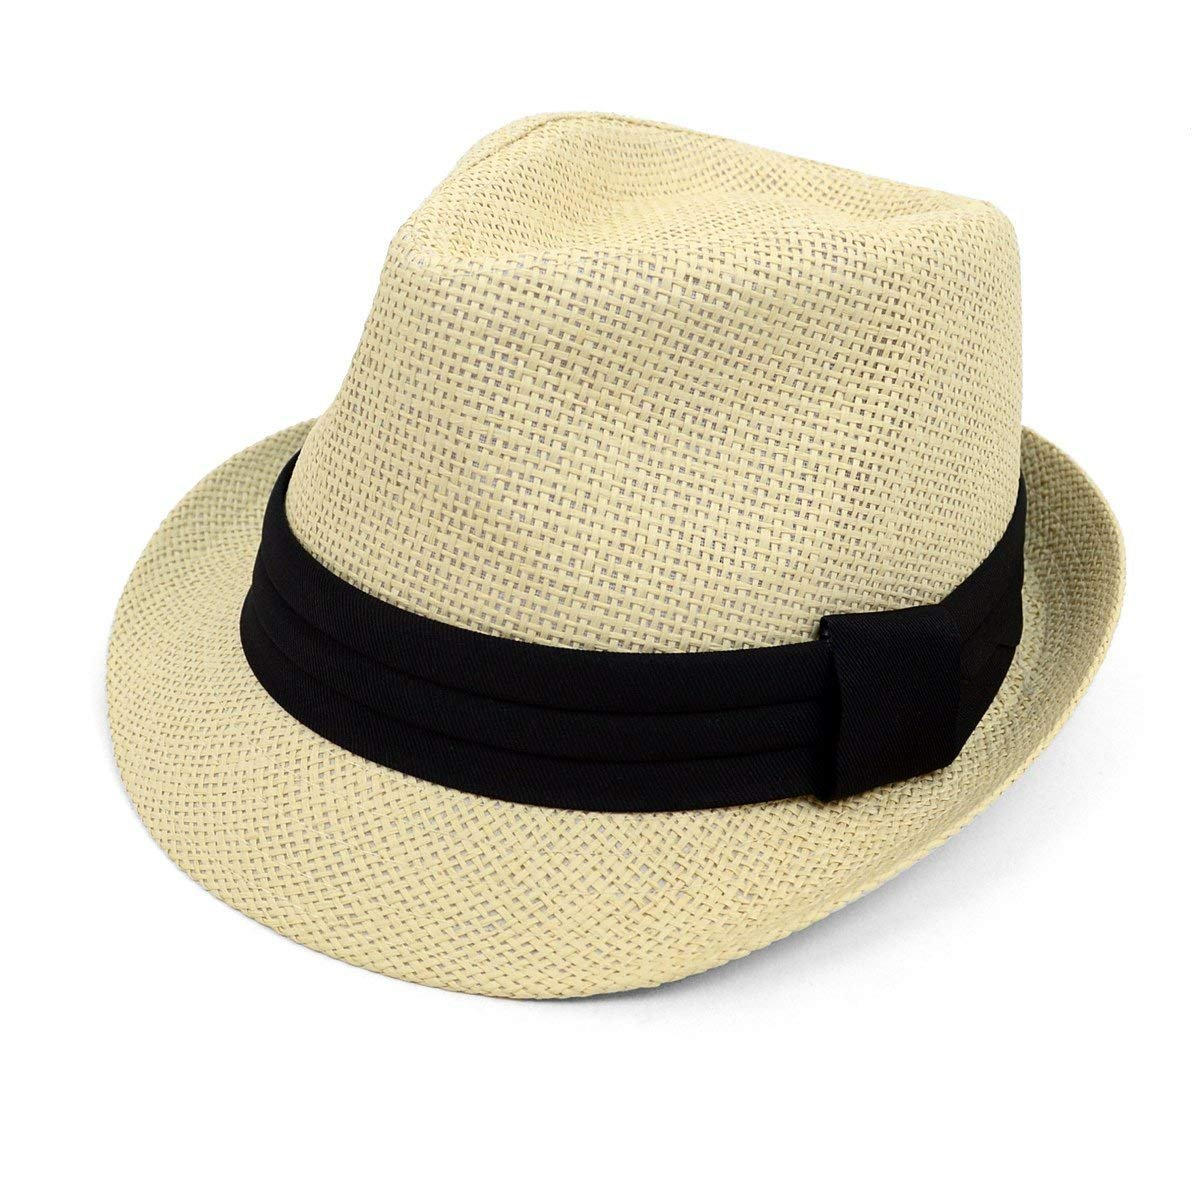 WESTEND Classic Style Fashion Fedora with Black Band - BOXED GIFTS 93f0a199b51